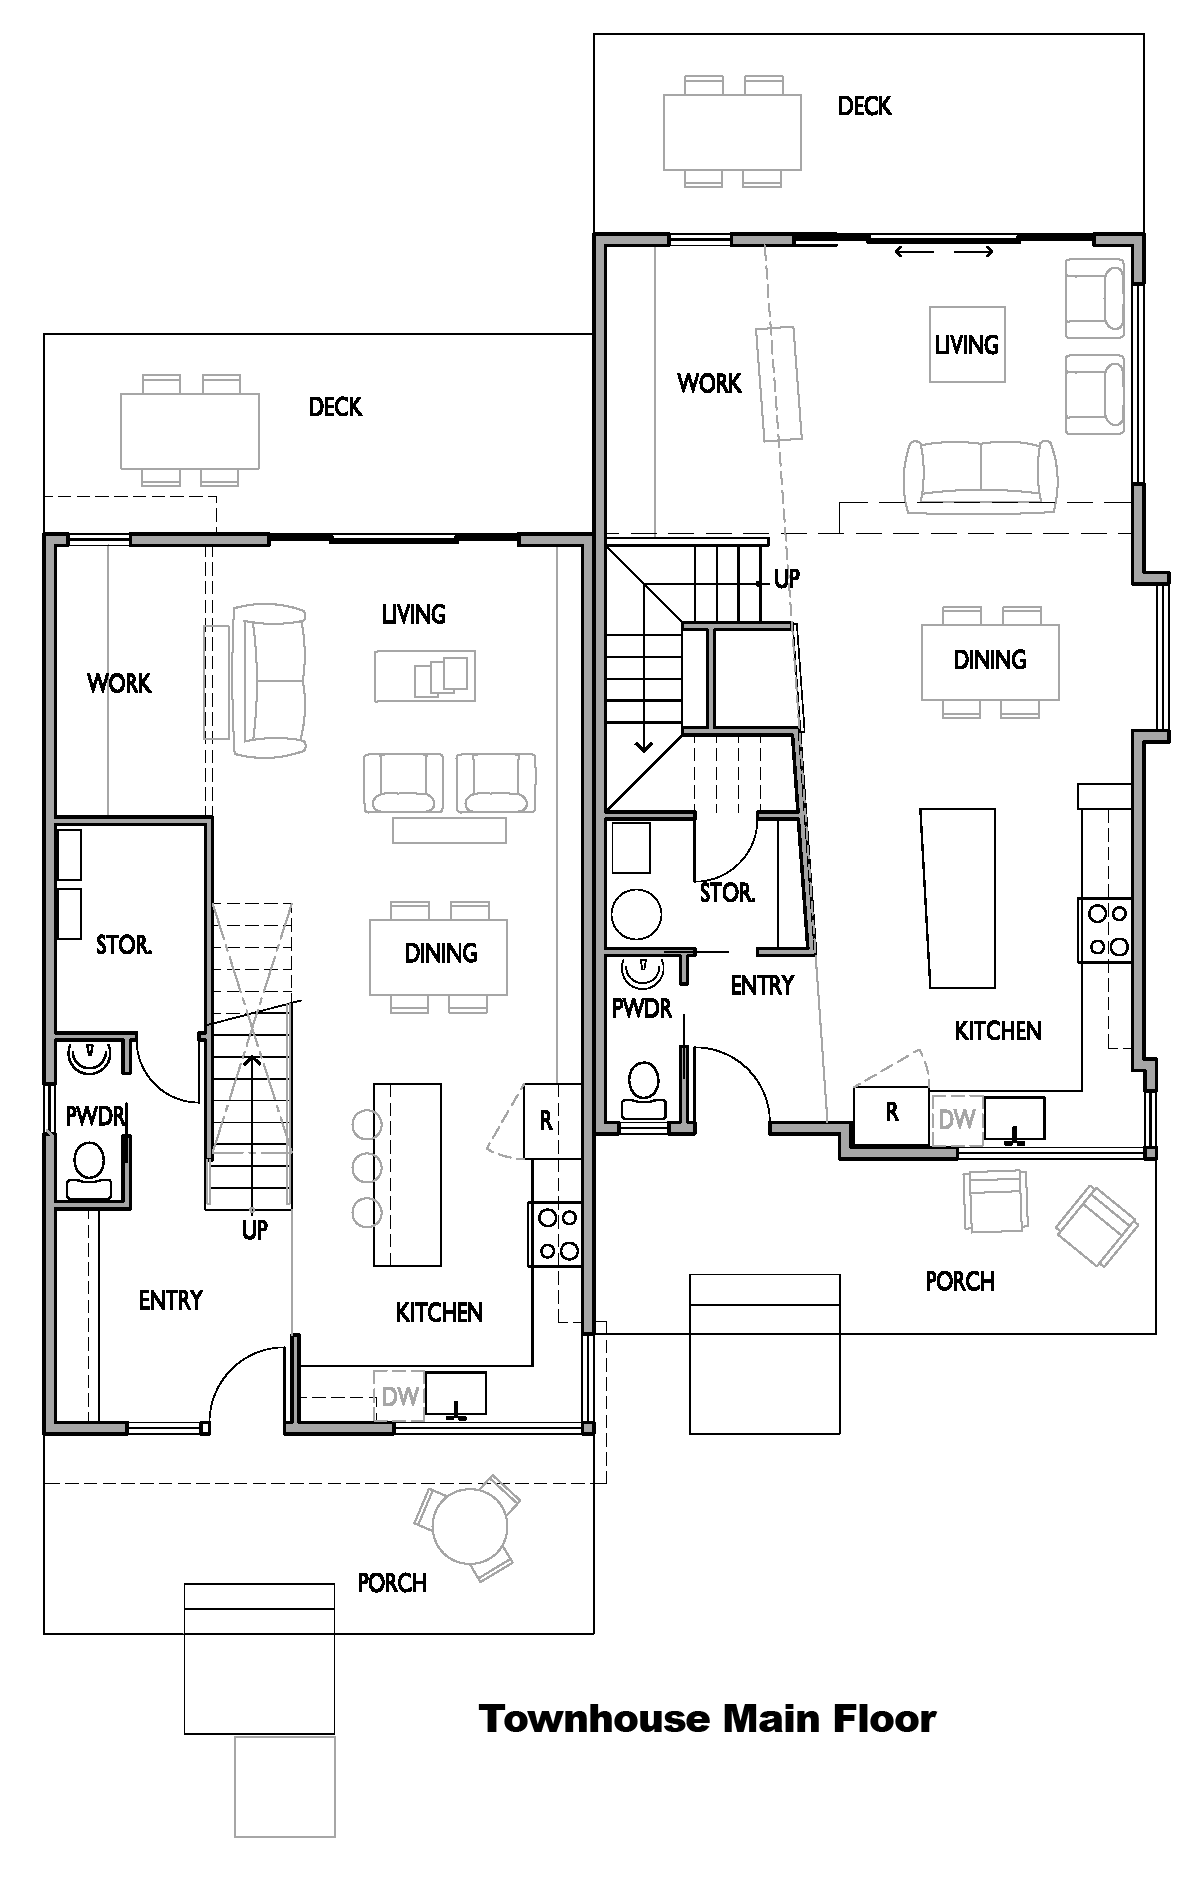 Clearwater Site and House Plans | Clearwater Commons